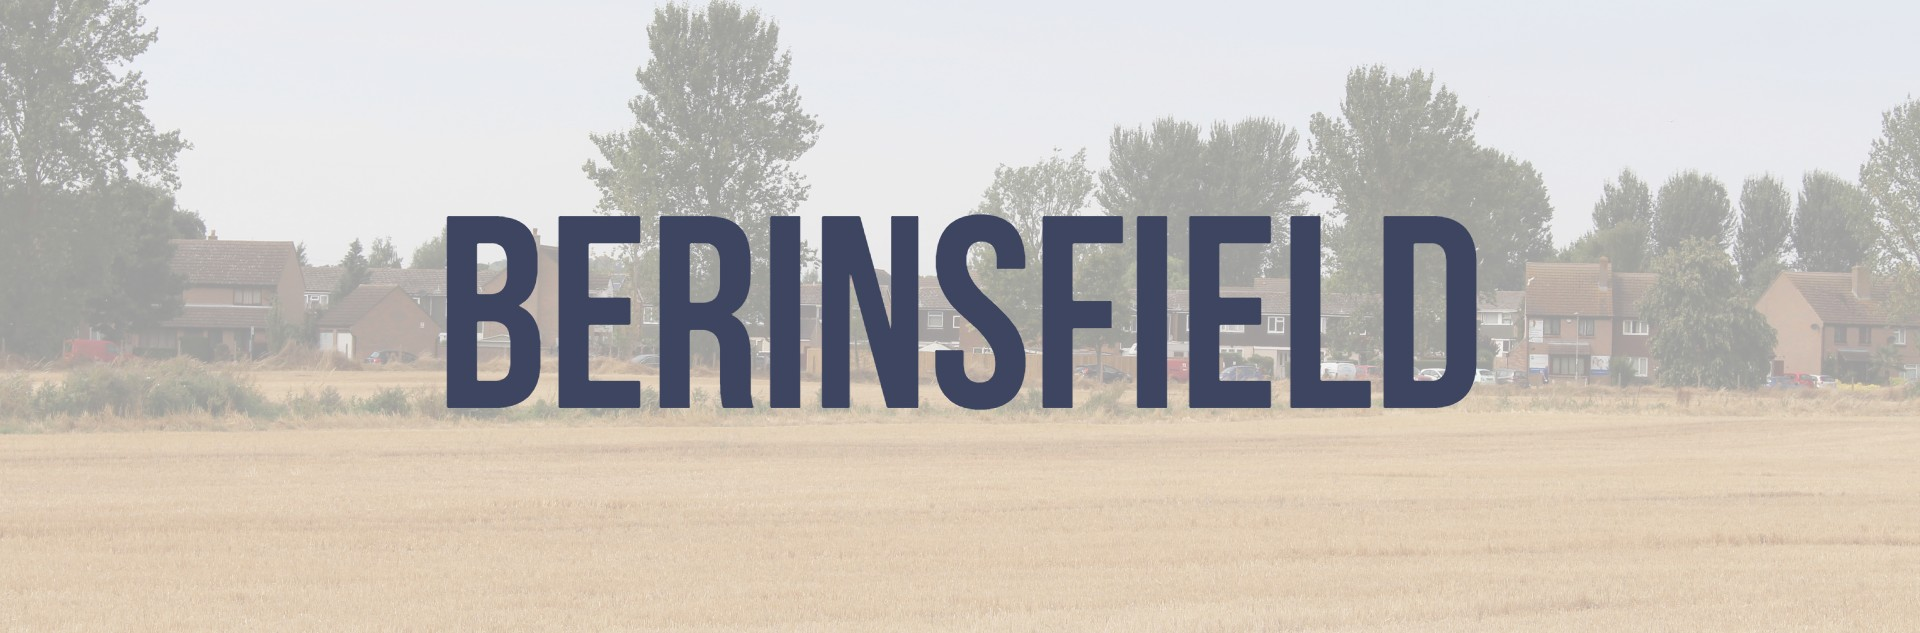 Berinsfield community pages